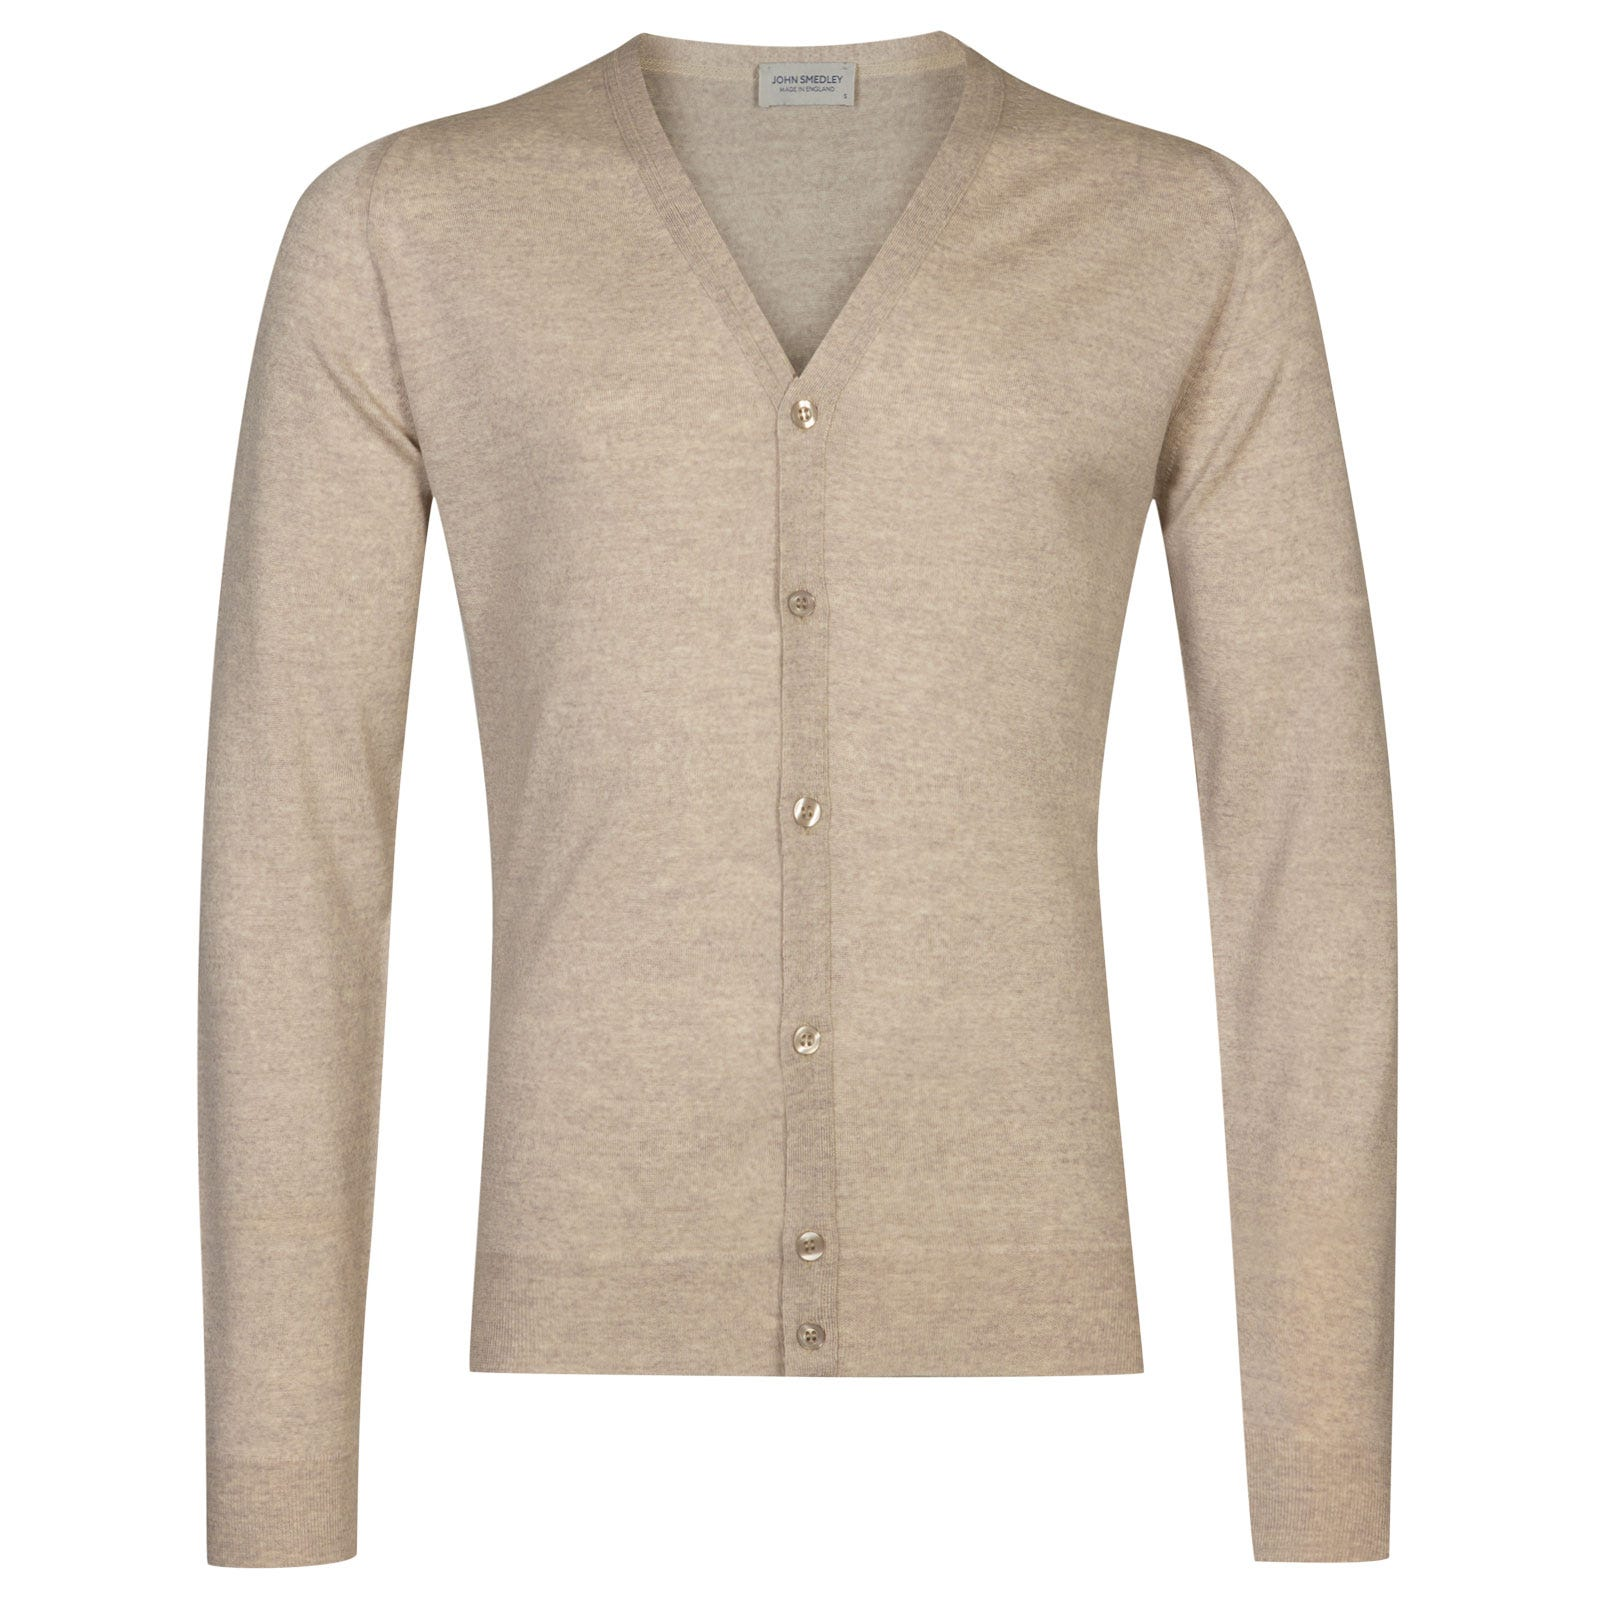 John Smedley petworth Merino Wool Cardigan in Eastwood Beige-XXL